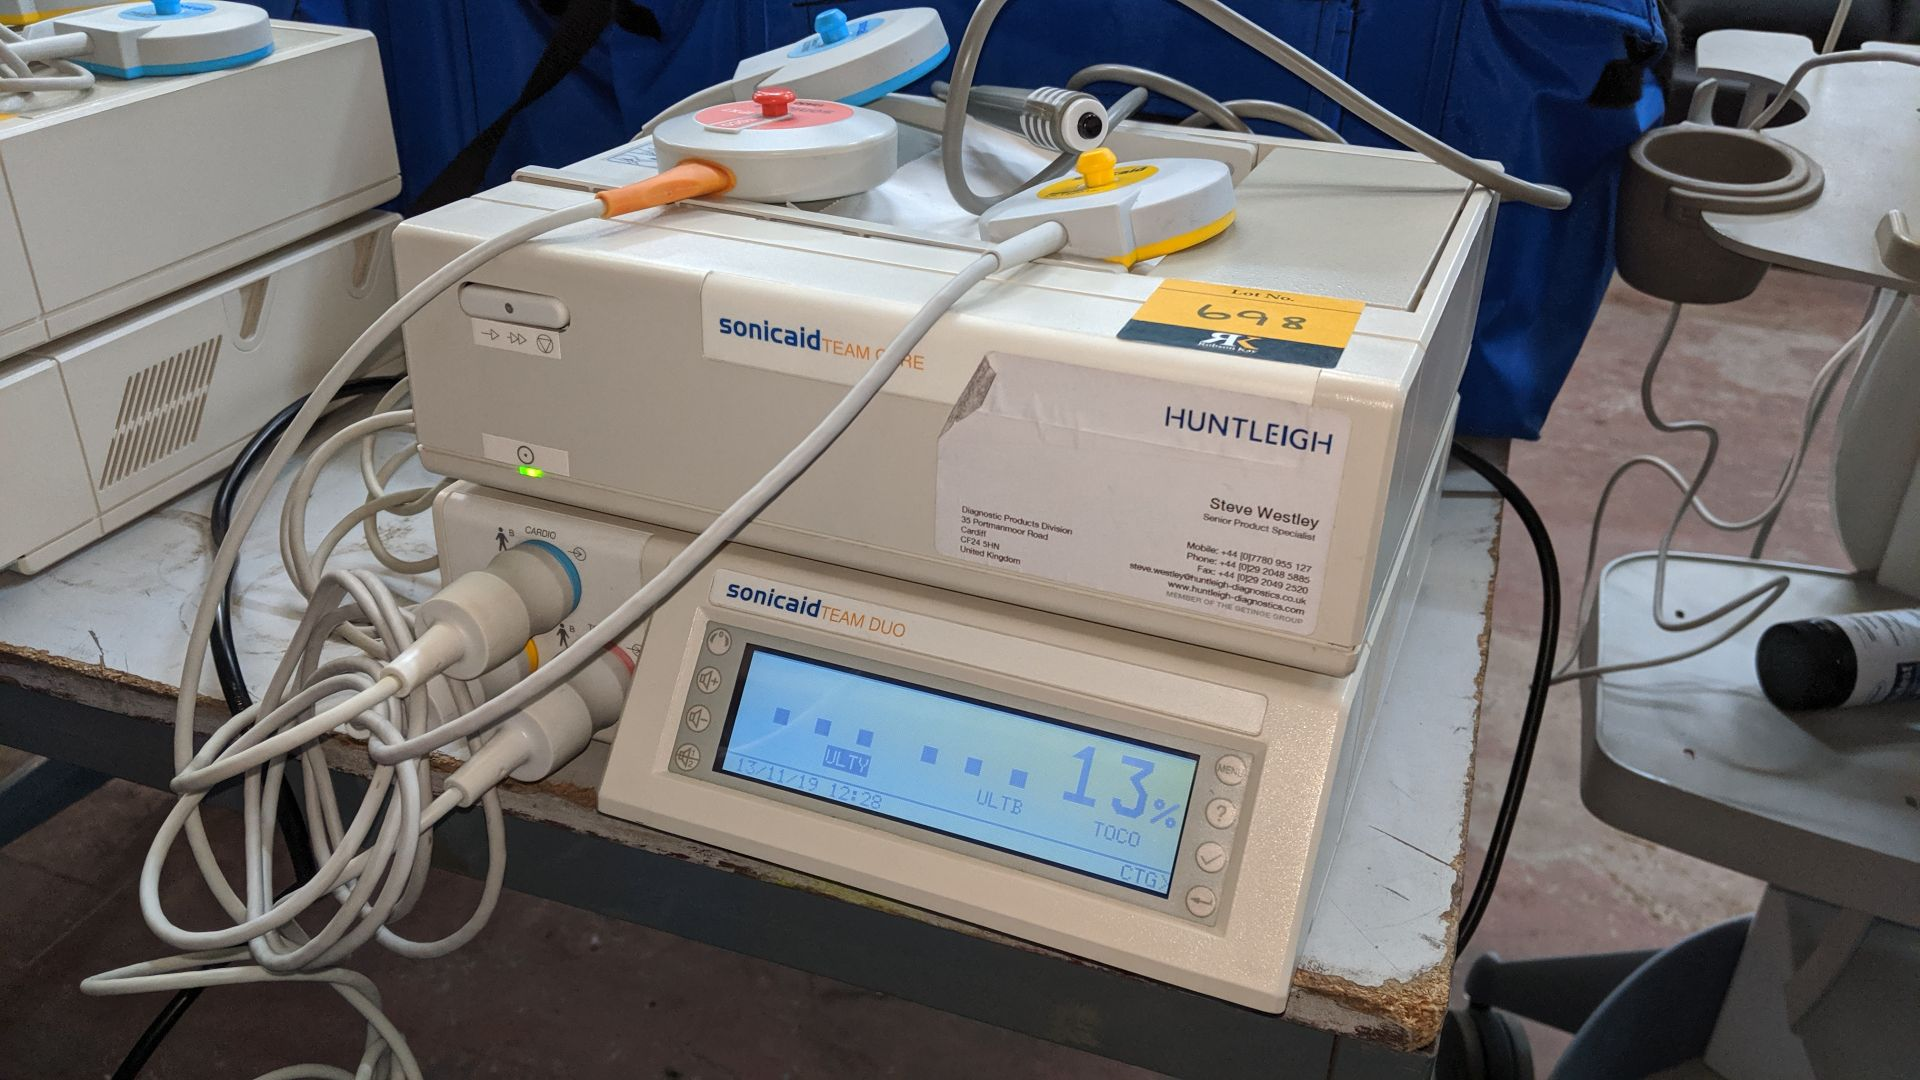 Lot 698 - Huntleigh Sonicaid Fetal scanning system comprising Team Duo & Team Care modules plus carry case &